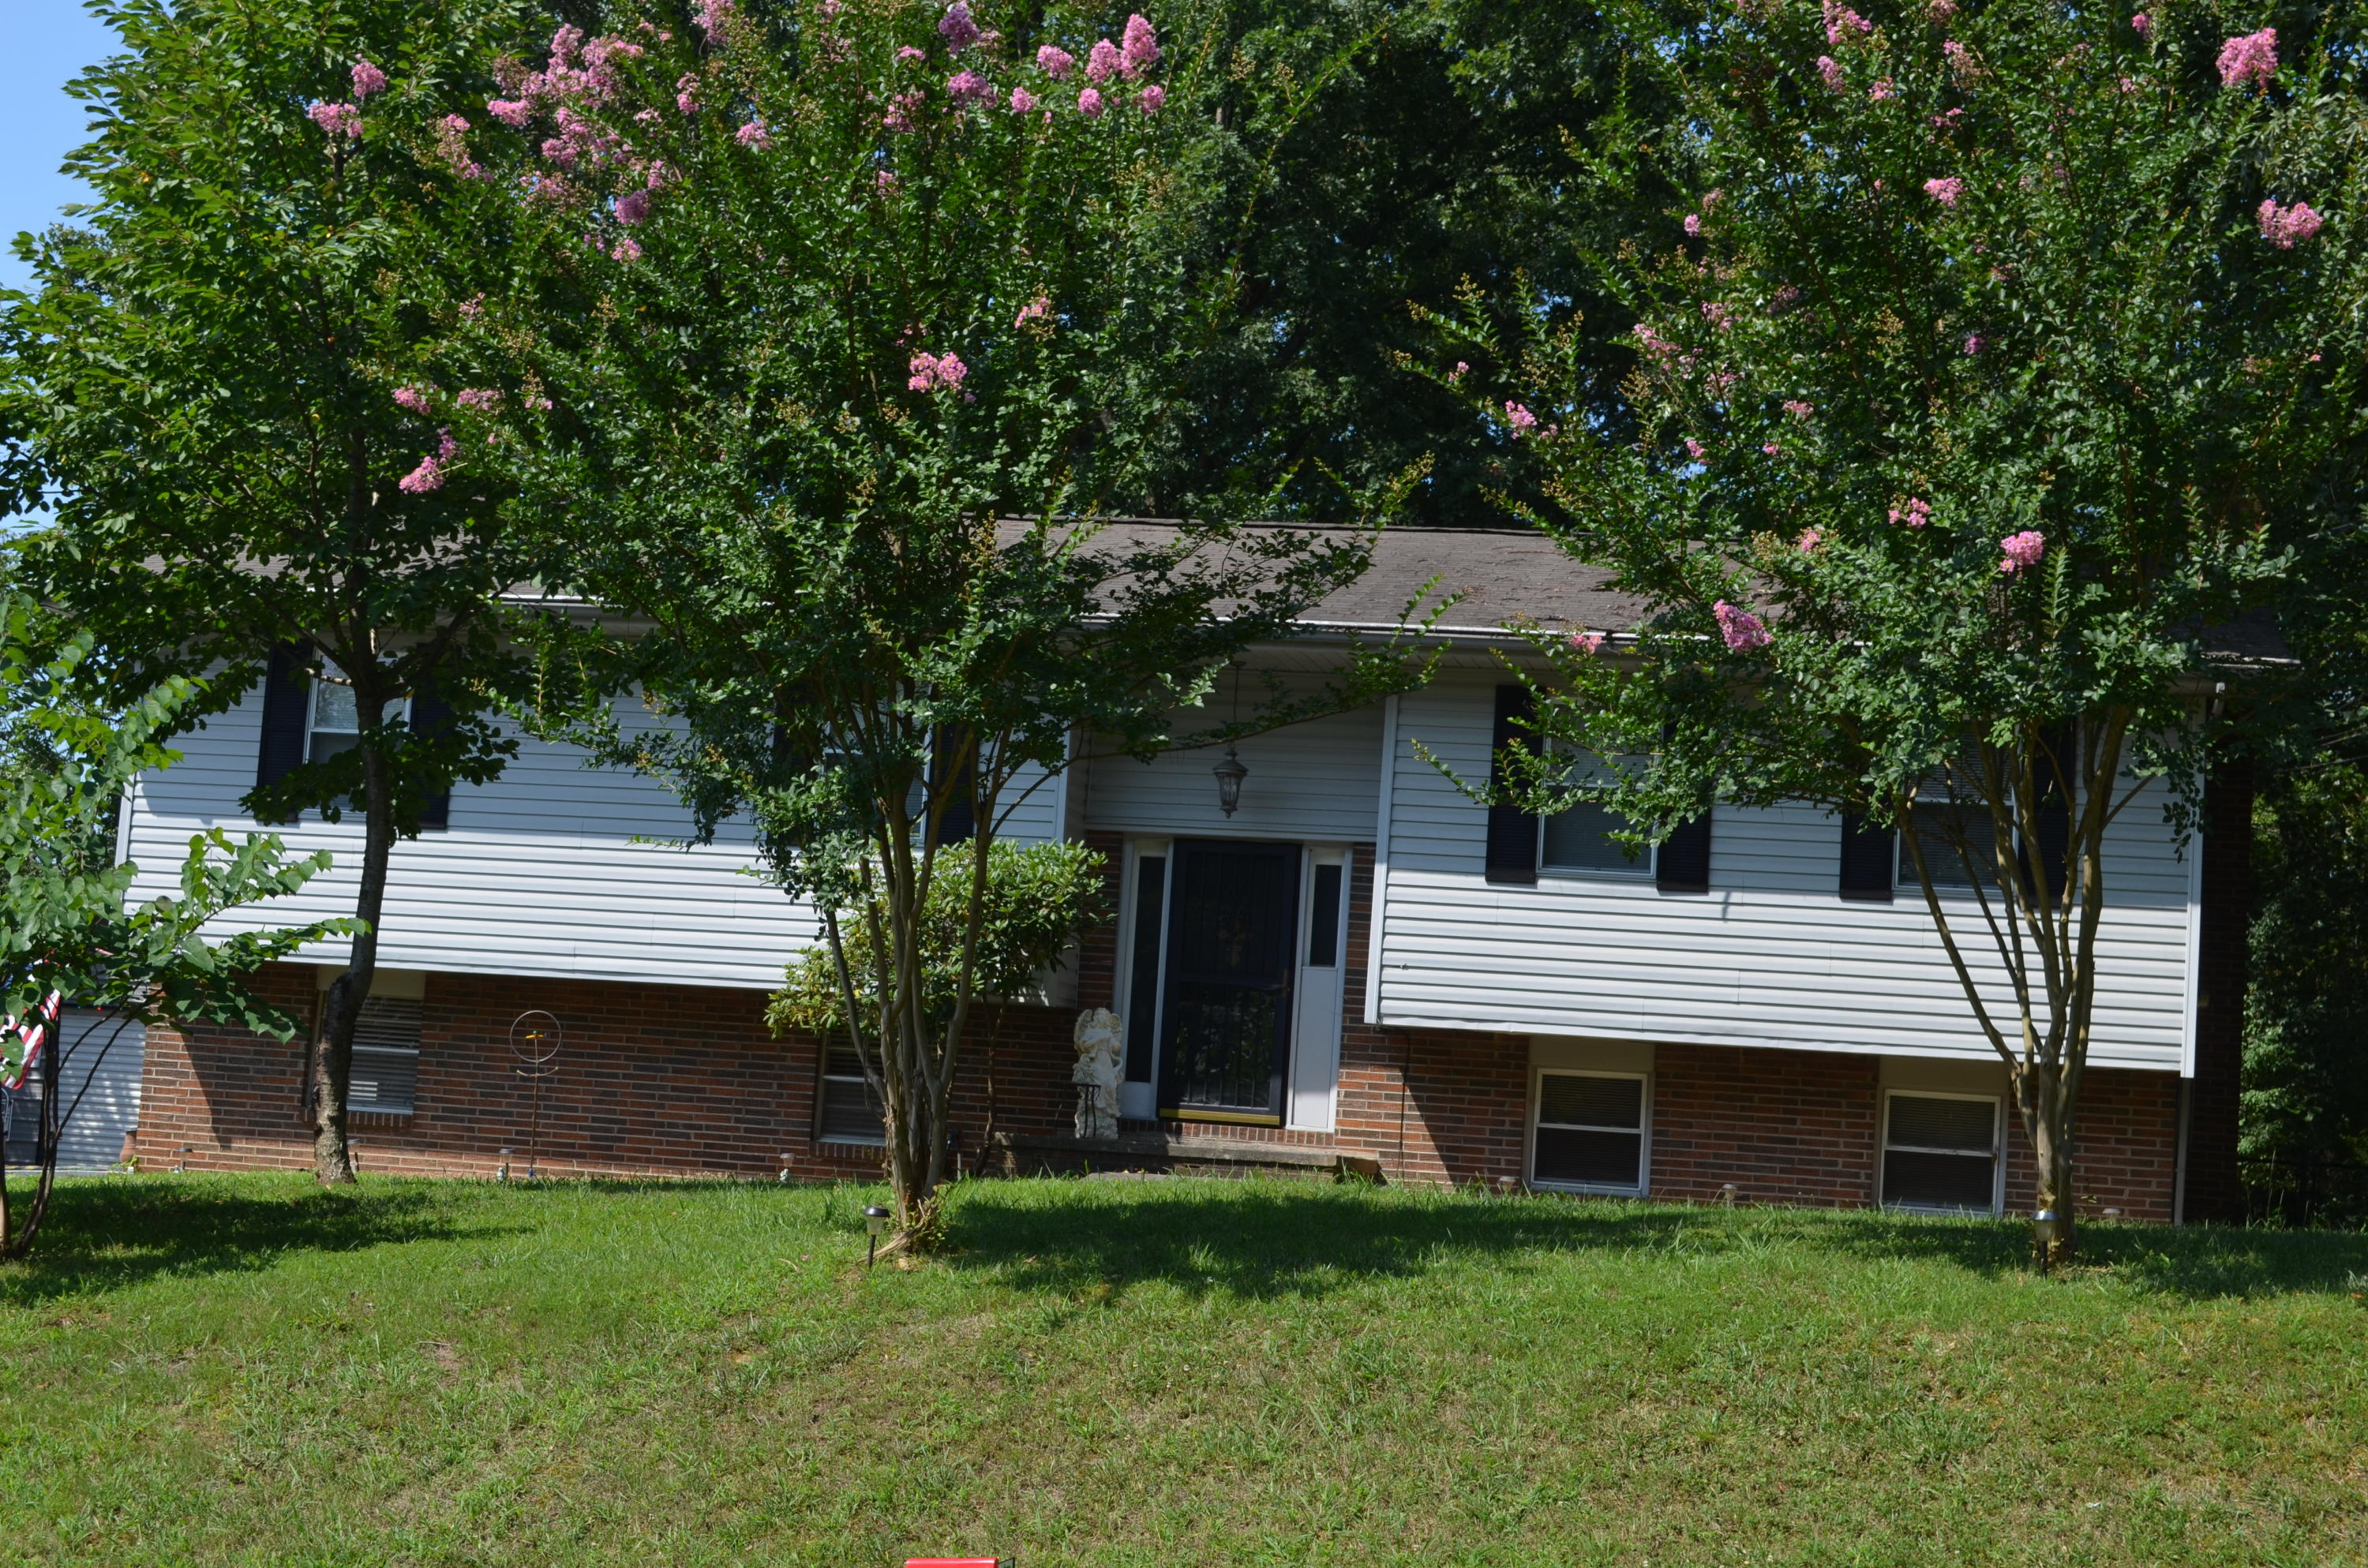 8902 Shallowford Rd, Knoxville, Tennessee 37923, 3 Bedrooms Bedrooms, ,2 BathroomsBathrooms,Single Family,For Sale,Shallowford,1088245